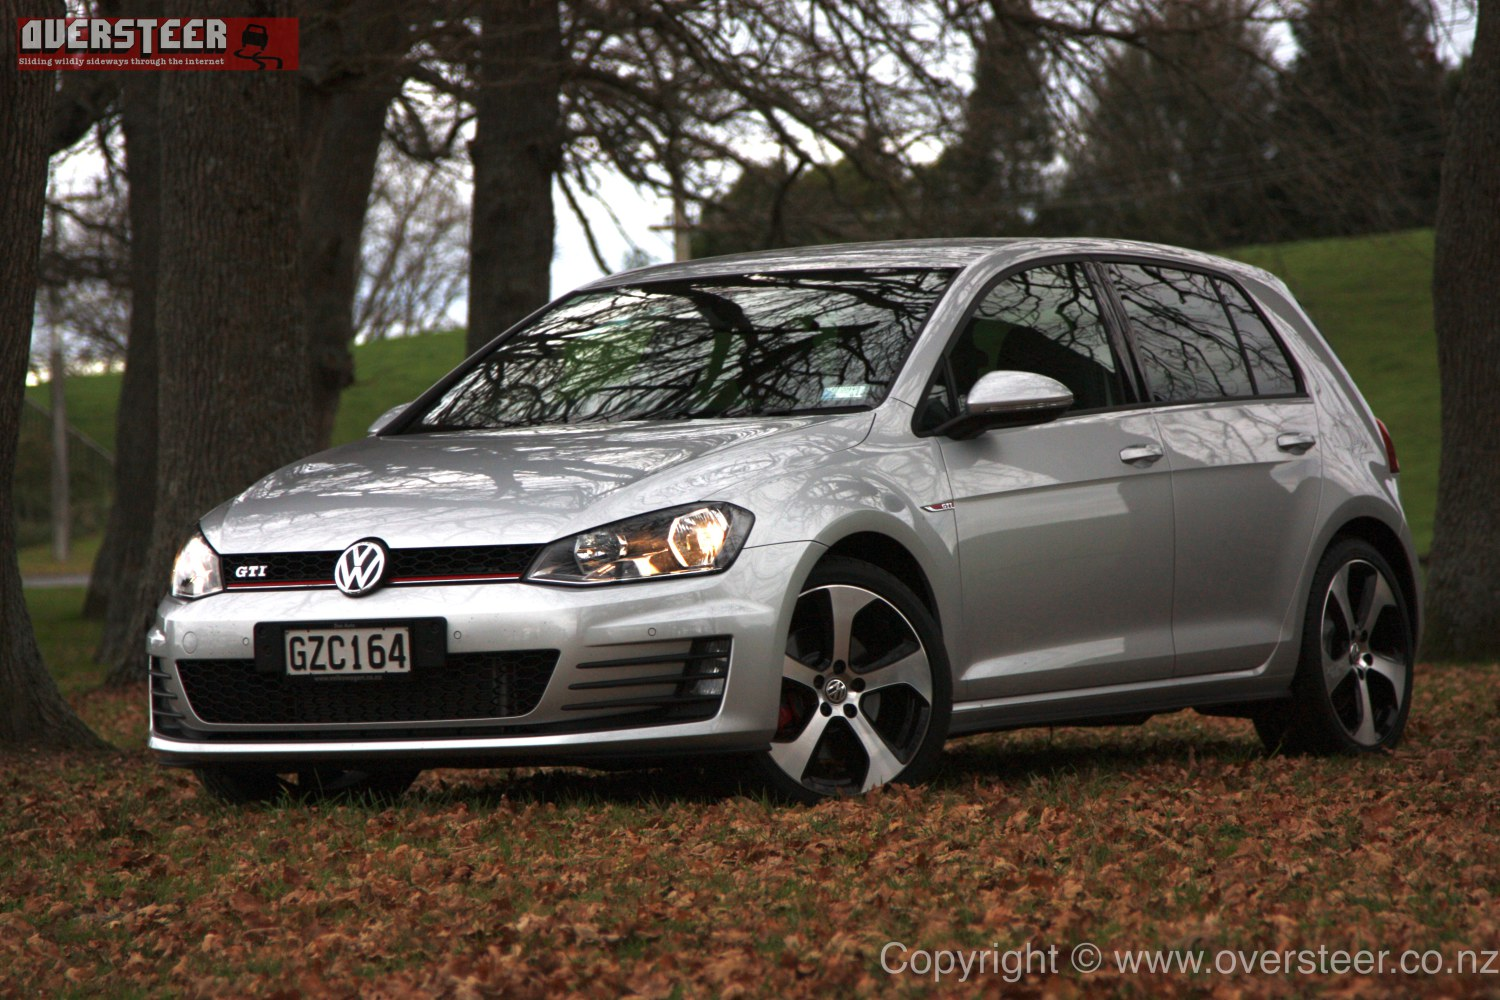 FIRST DRIVE: Volkswagen Golf GTI